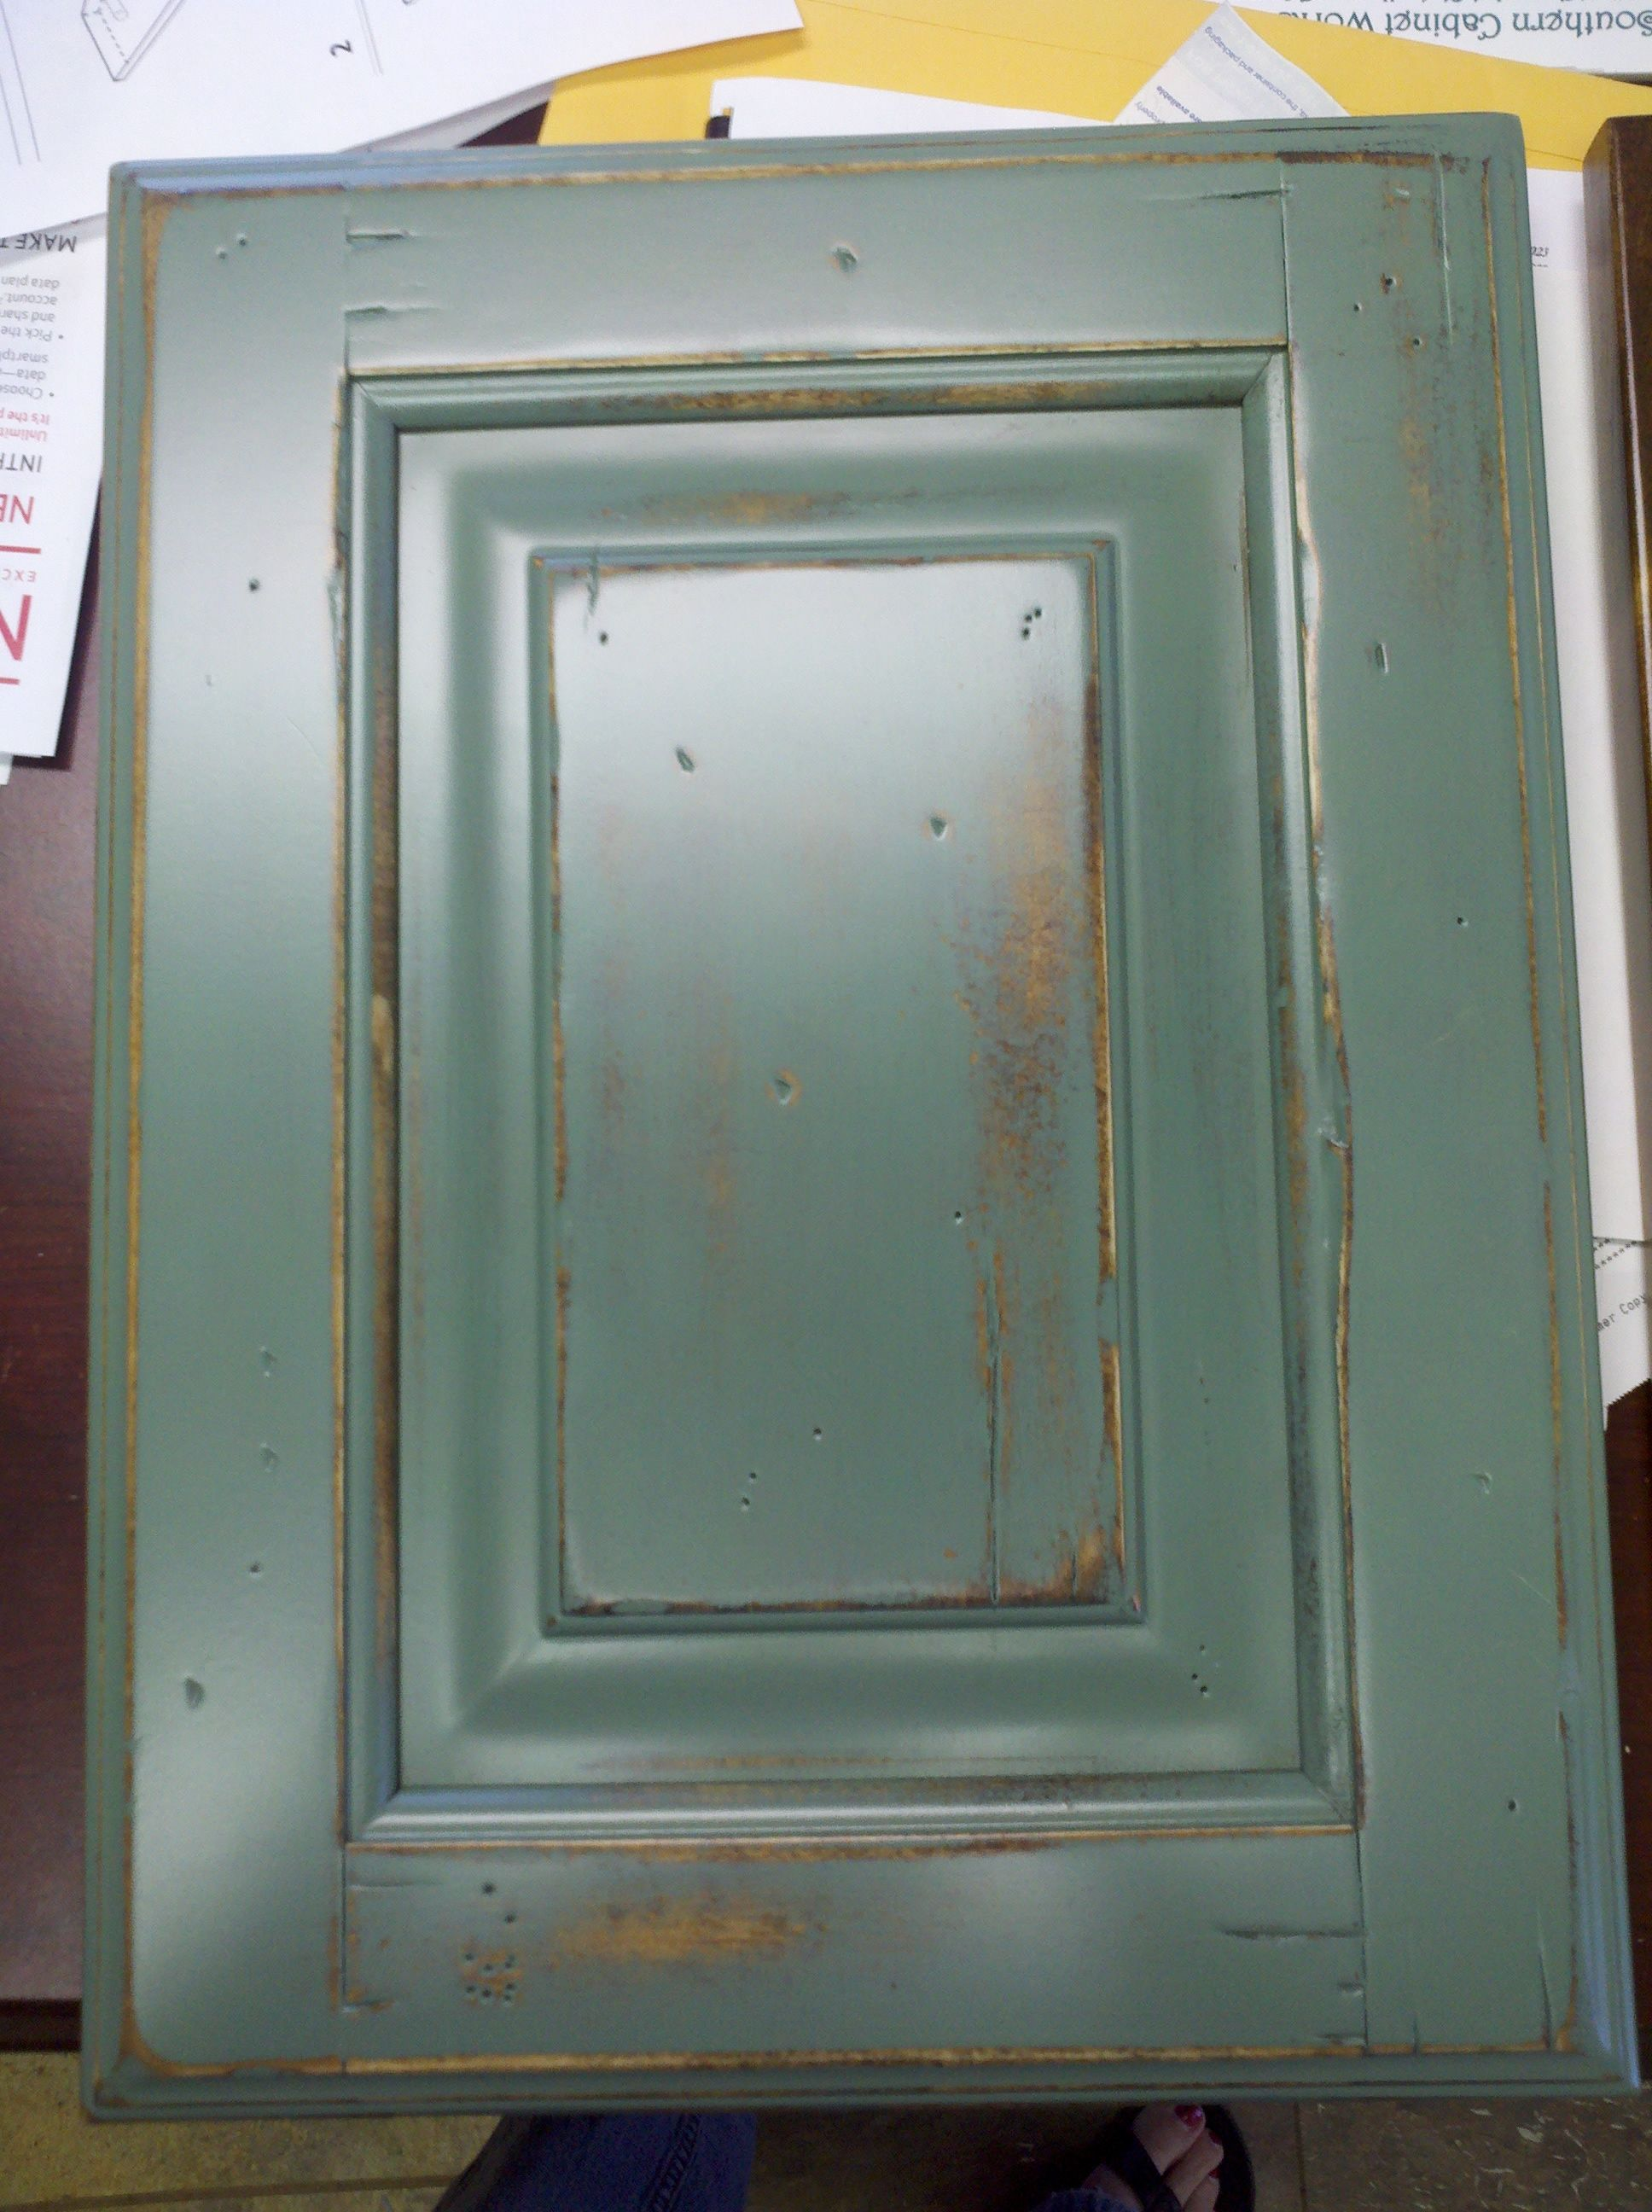 distressed turquoise kitchen cabinets turquoise kitchen cabinets Distressed Turquoise Kitchen Cabinets Google Search These Are The I Want Shown Above In Knotty Alder